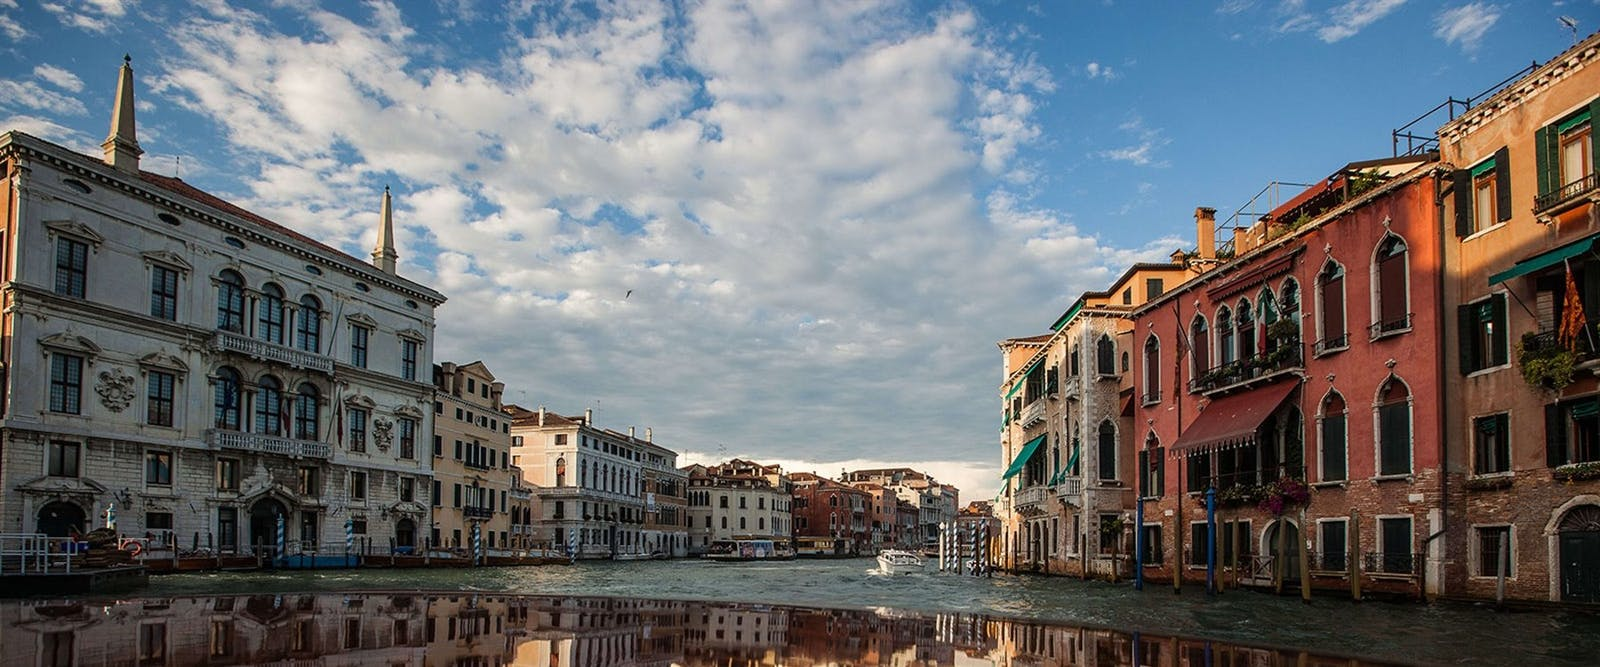 Grand Canal at Aman, Venice, Italy